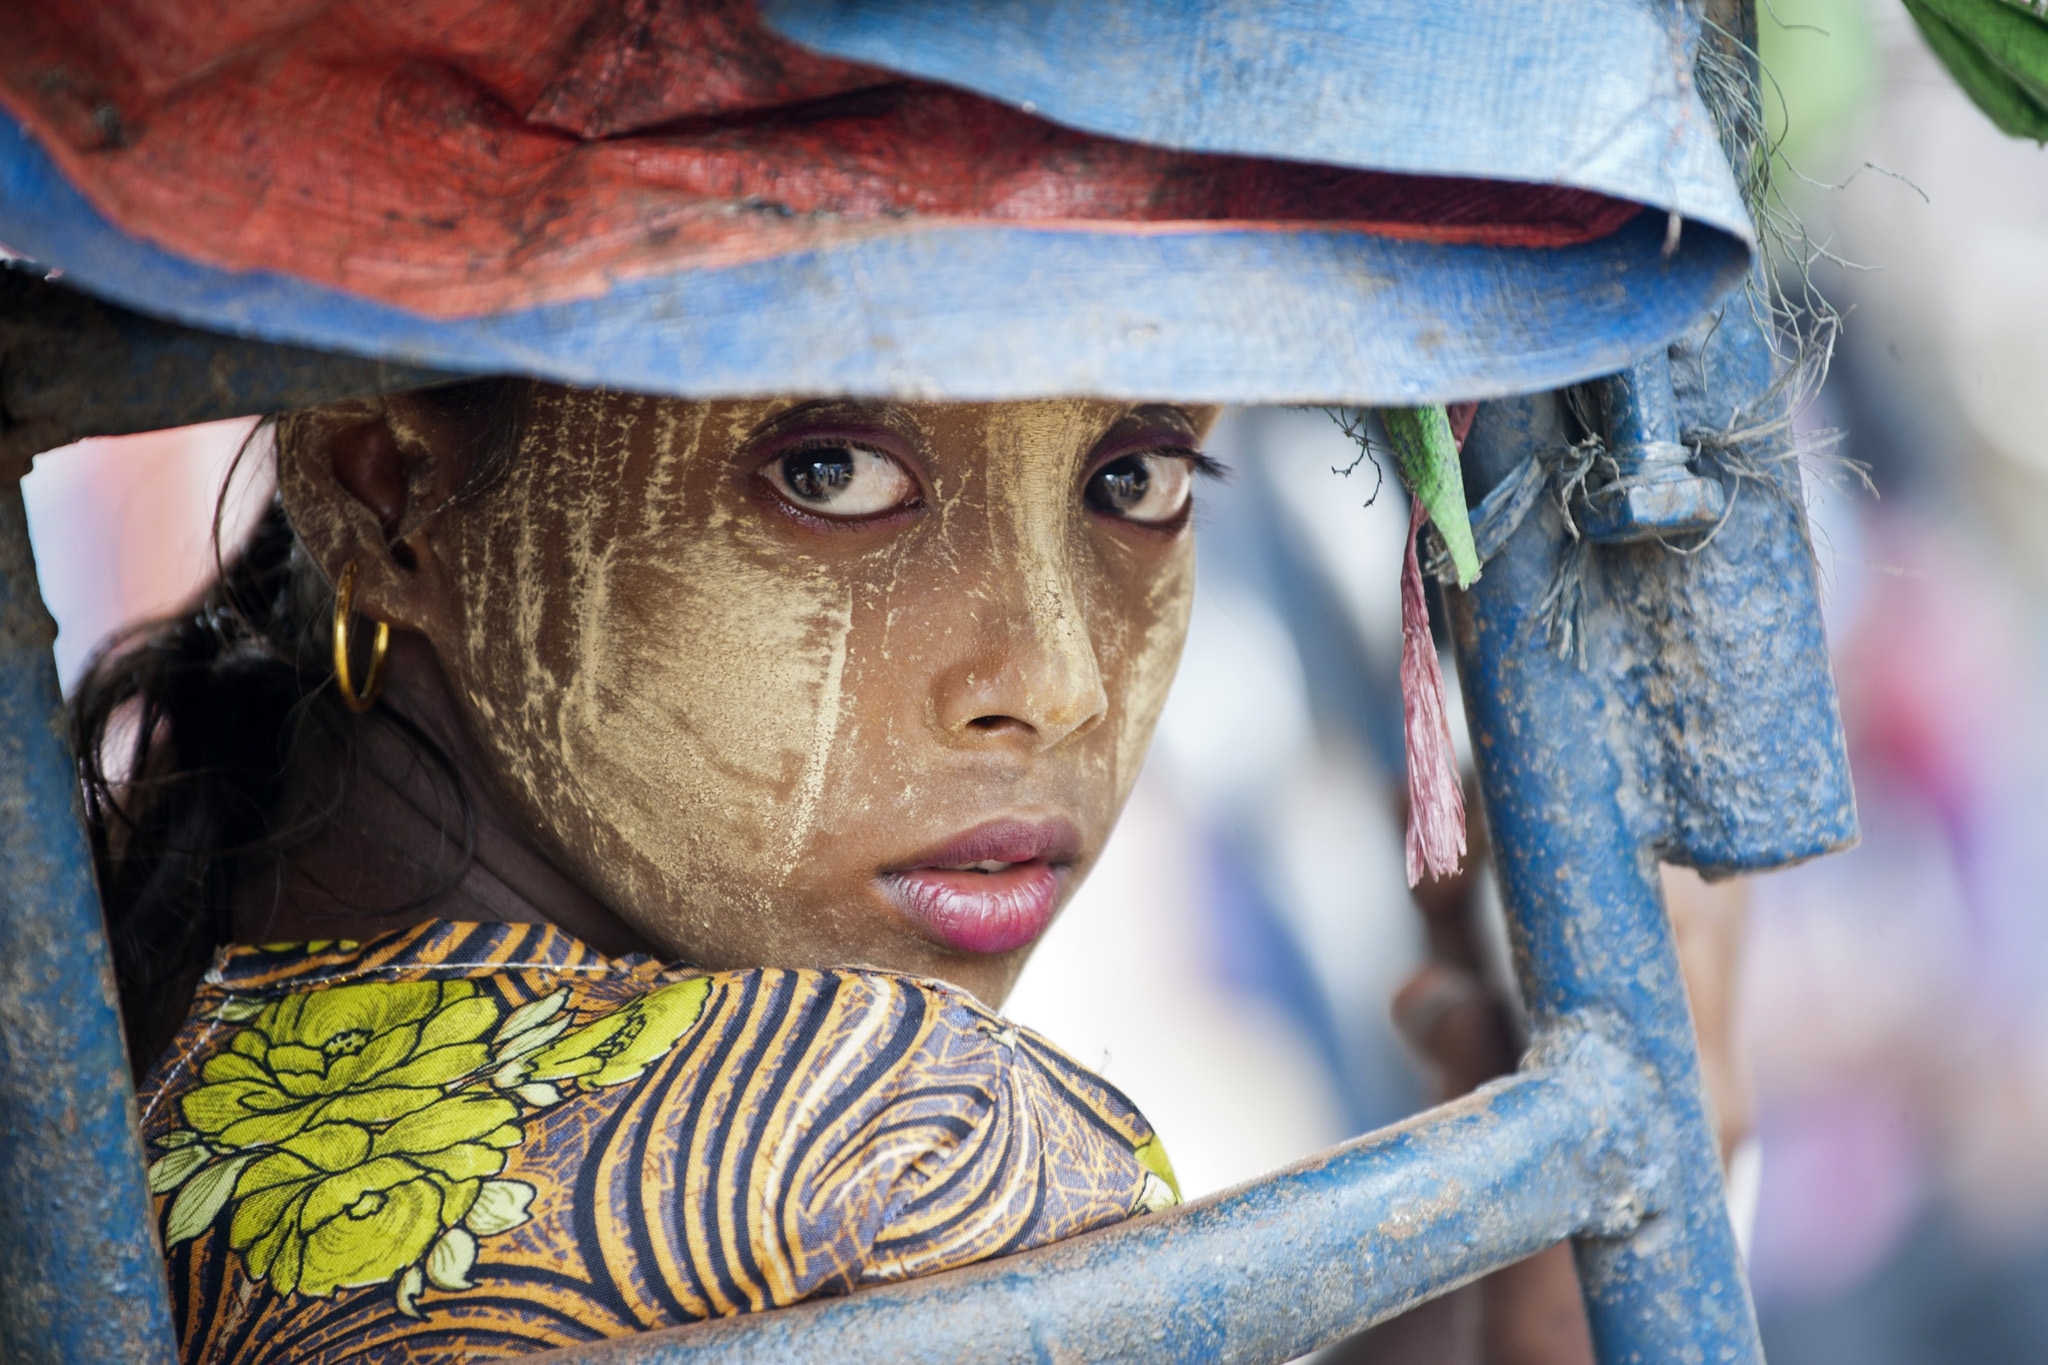 This photo taken on May 21, 201...TOPSHOTS This photo taken on May 21, 2015 shows an ethnic Rohingya Muslim woman looking back as she rides a tuk tuk near a camp set up outside the city of Sittwe in Myanmar's Rakhine state. Malaysia ordered search and rescue missions on May 22 for thousands of boatpeople stranded at sea, as Myanmar hosted talks with US and Southeast Asian envoys on the migrant exodus from its shores.  AFP PHOTO / YE AUNG THUYe Aung Thu/AFP/Getty Images